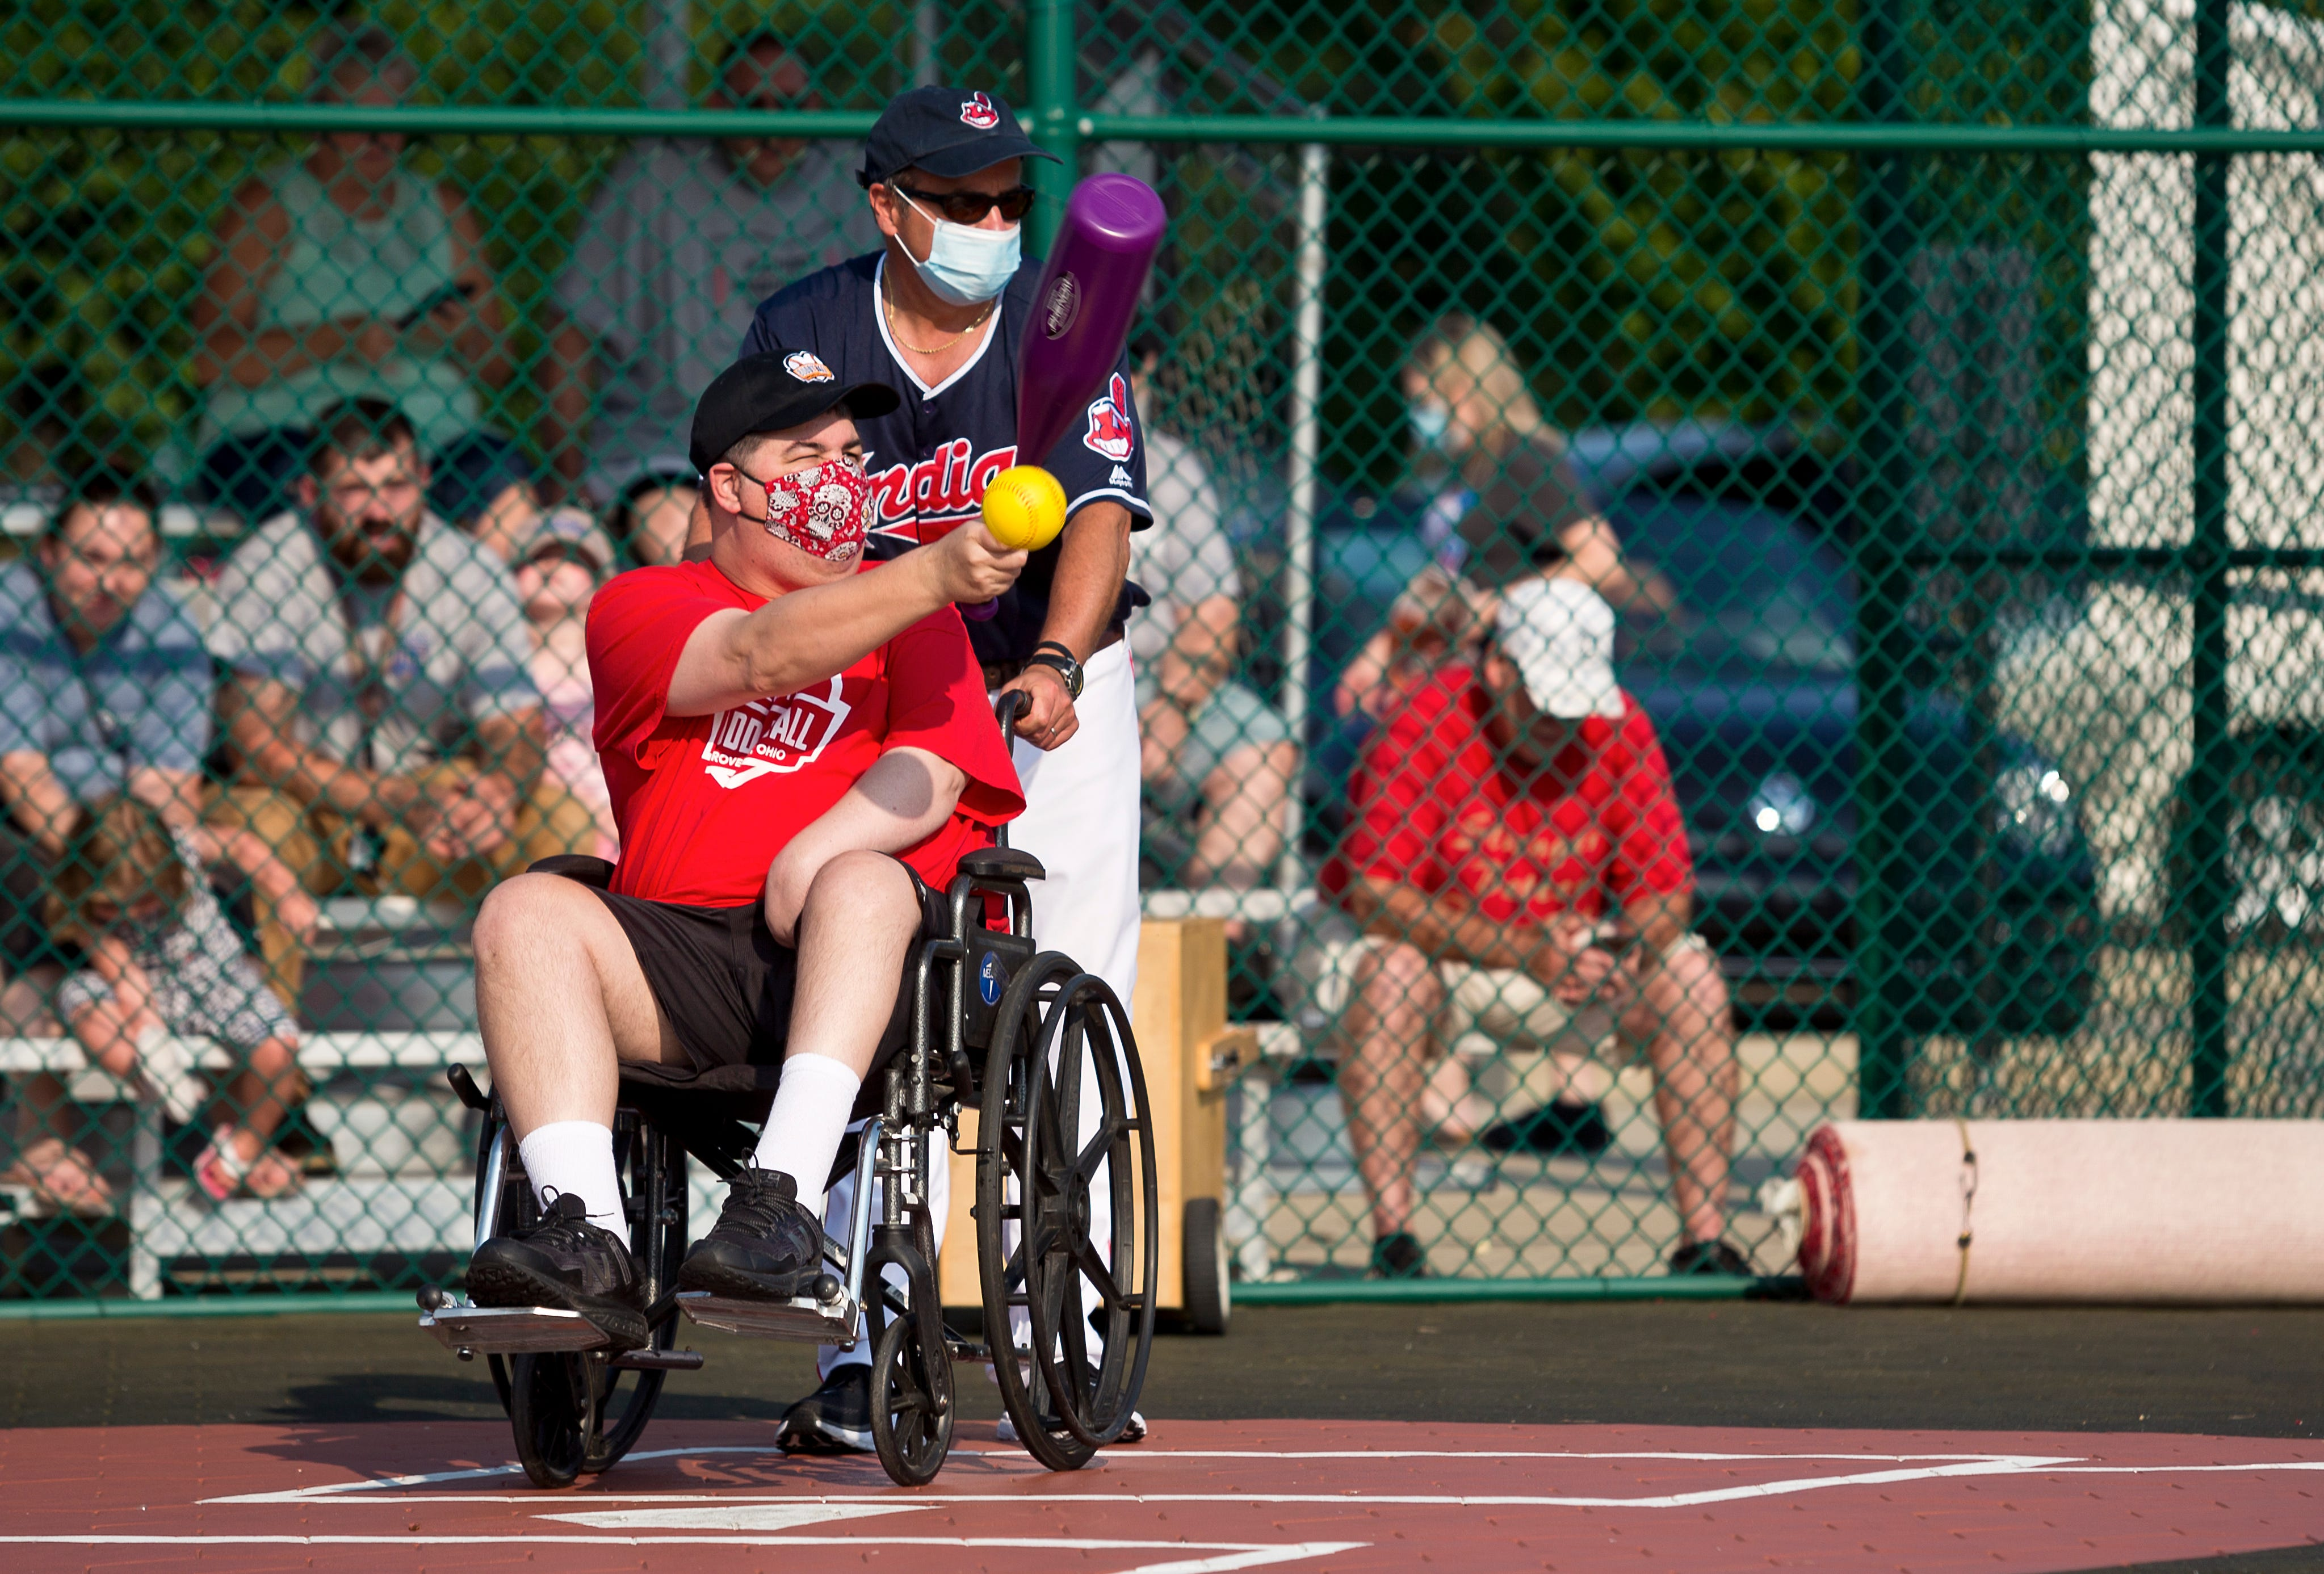 Everyday Hero Mark Sigrist photographed with his buddy Derek Somers during the final Buddy Ball game of the summer session on Wednesday, July 14, 2021.